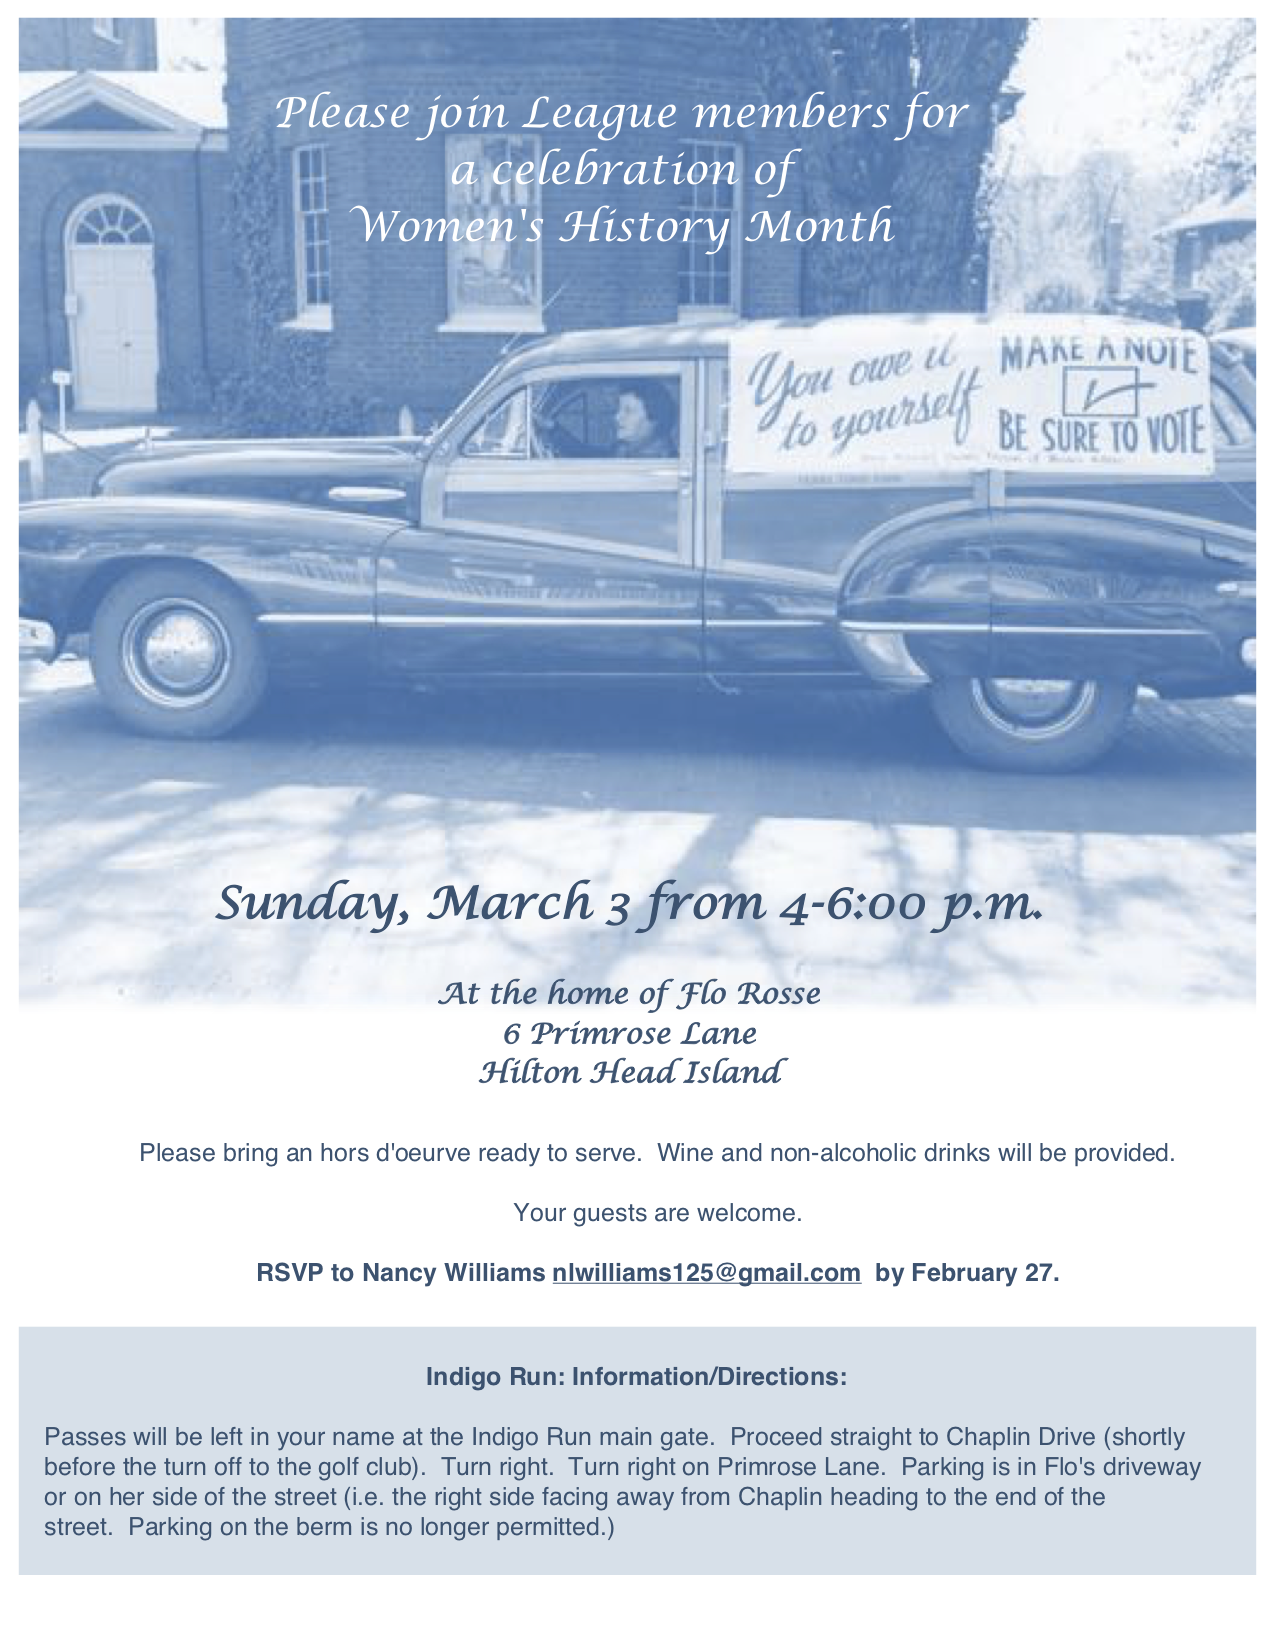 Celebrate Women's History Month with the League on March 3, 4-6 p.m.